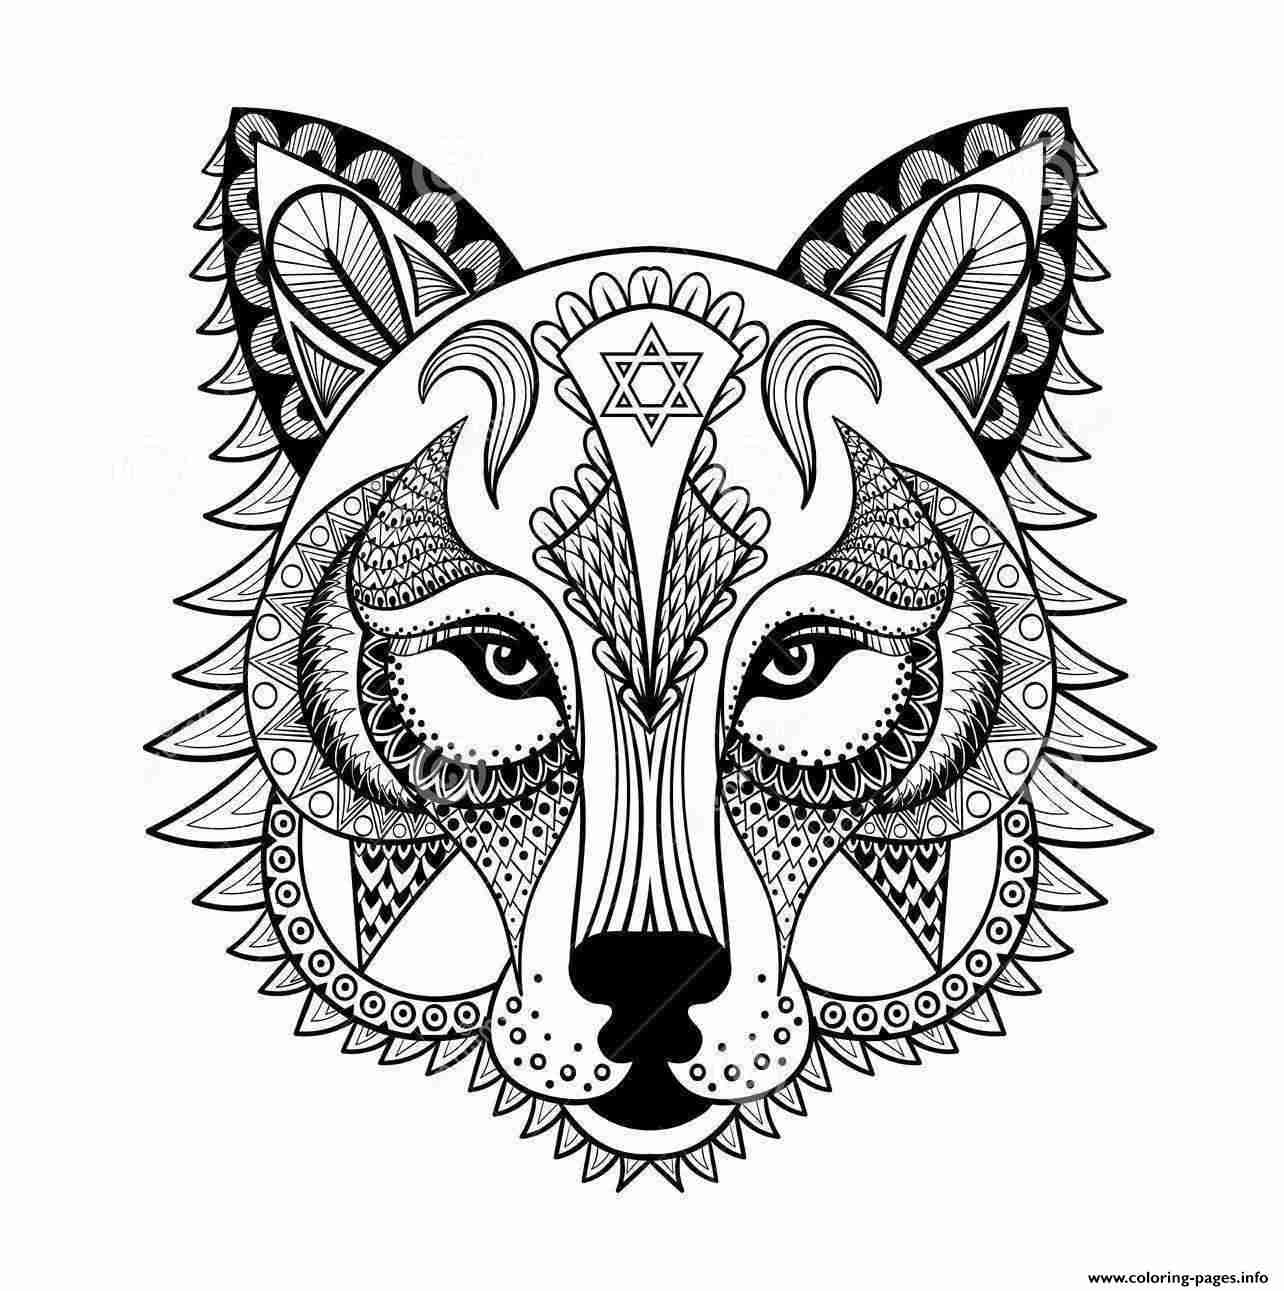 1284x1291 Inspiration Wolf Coloring Pages For Adults New Page Free Printable